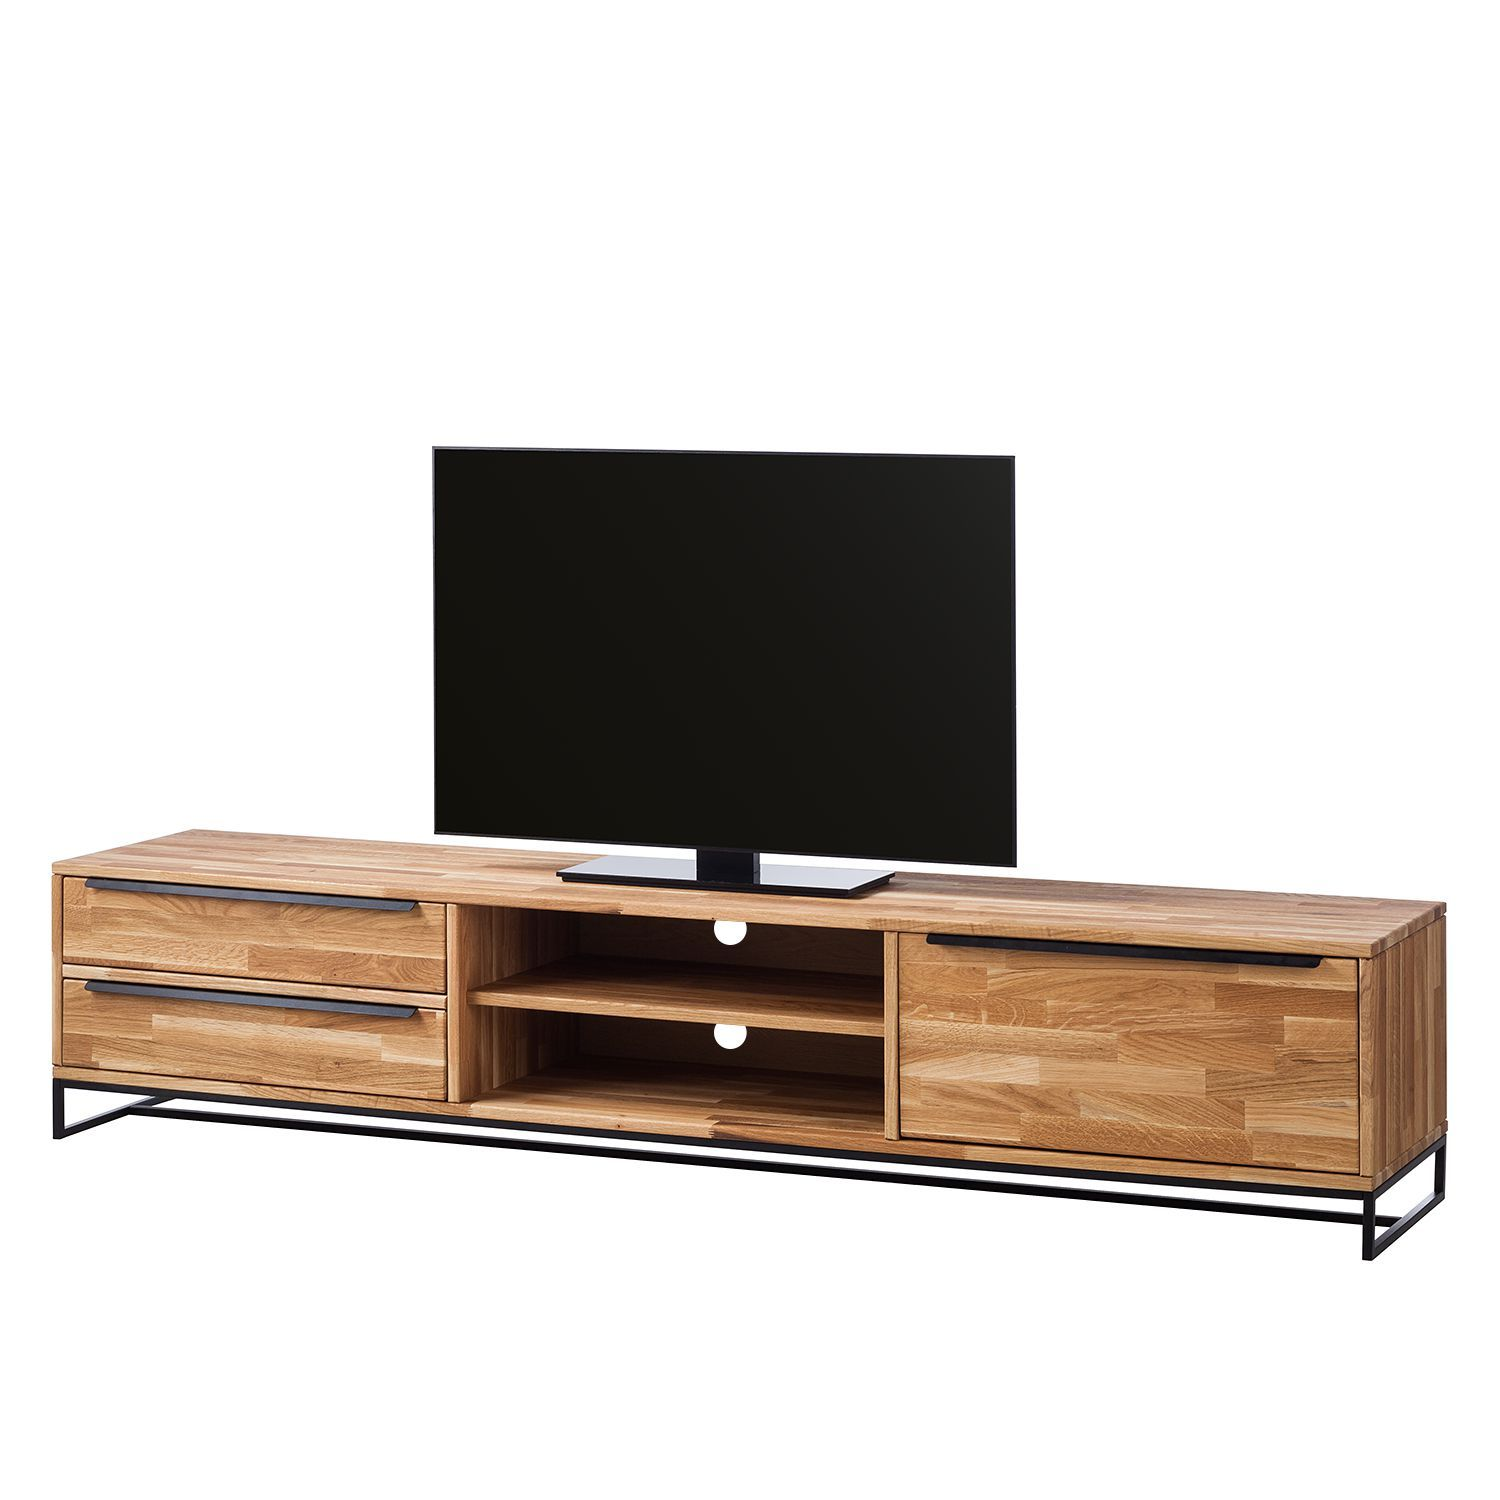 Tv Lowboard Anthrazit Pin By Ladendirekt On Tv Hifi Möbel Cabinet Furniture Tv Rack